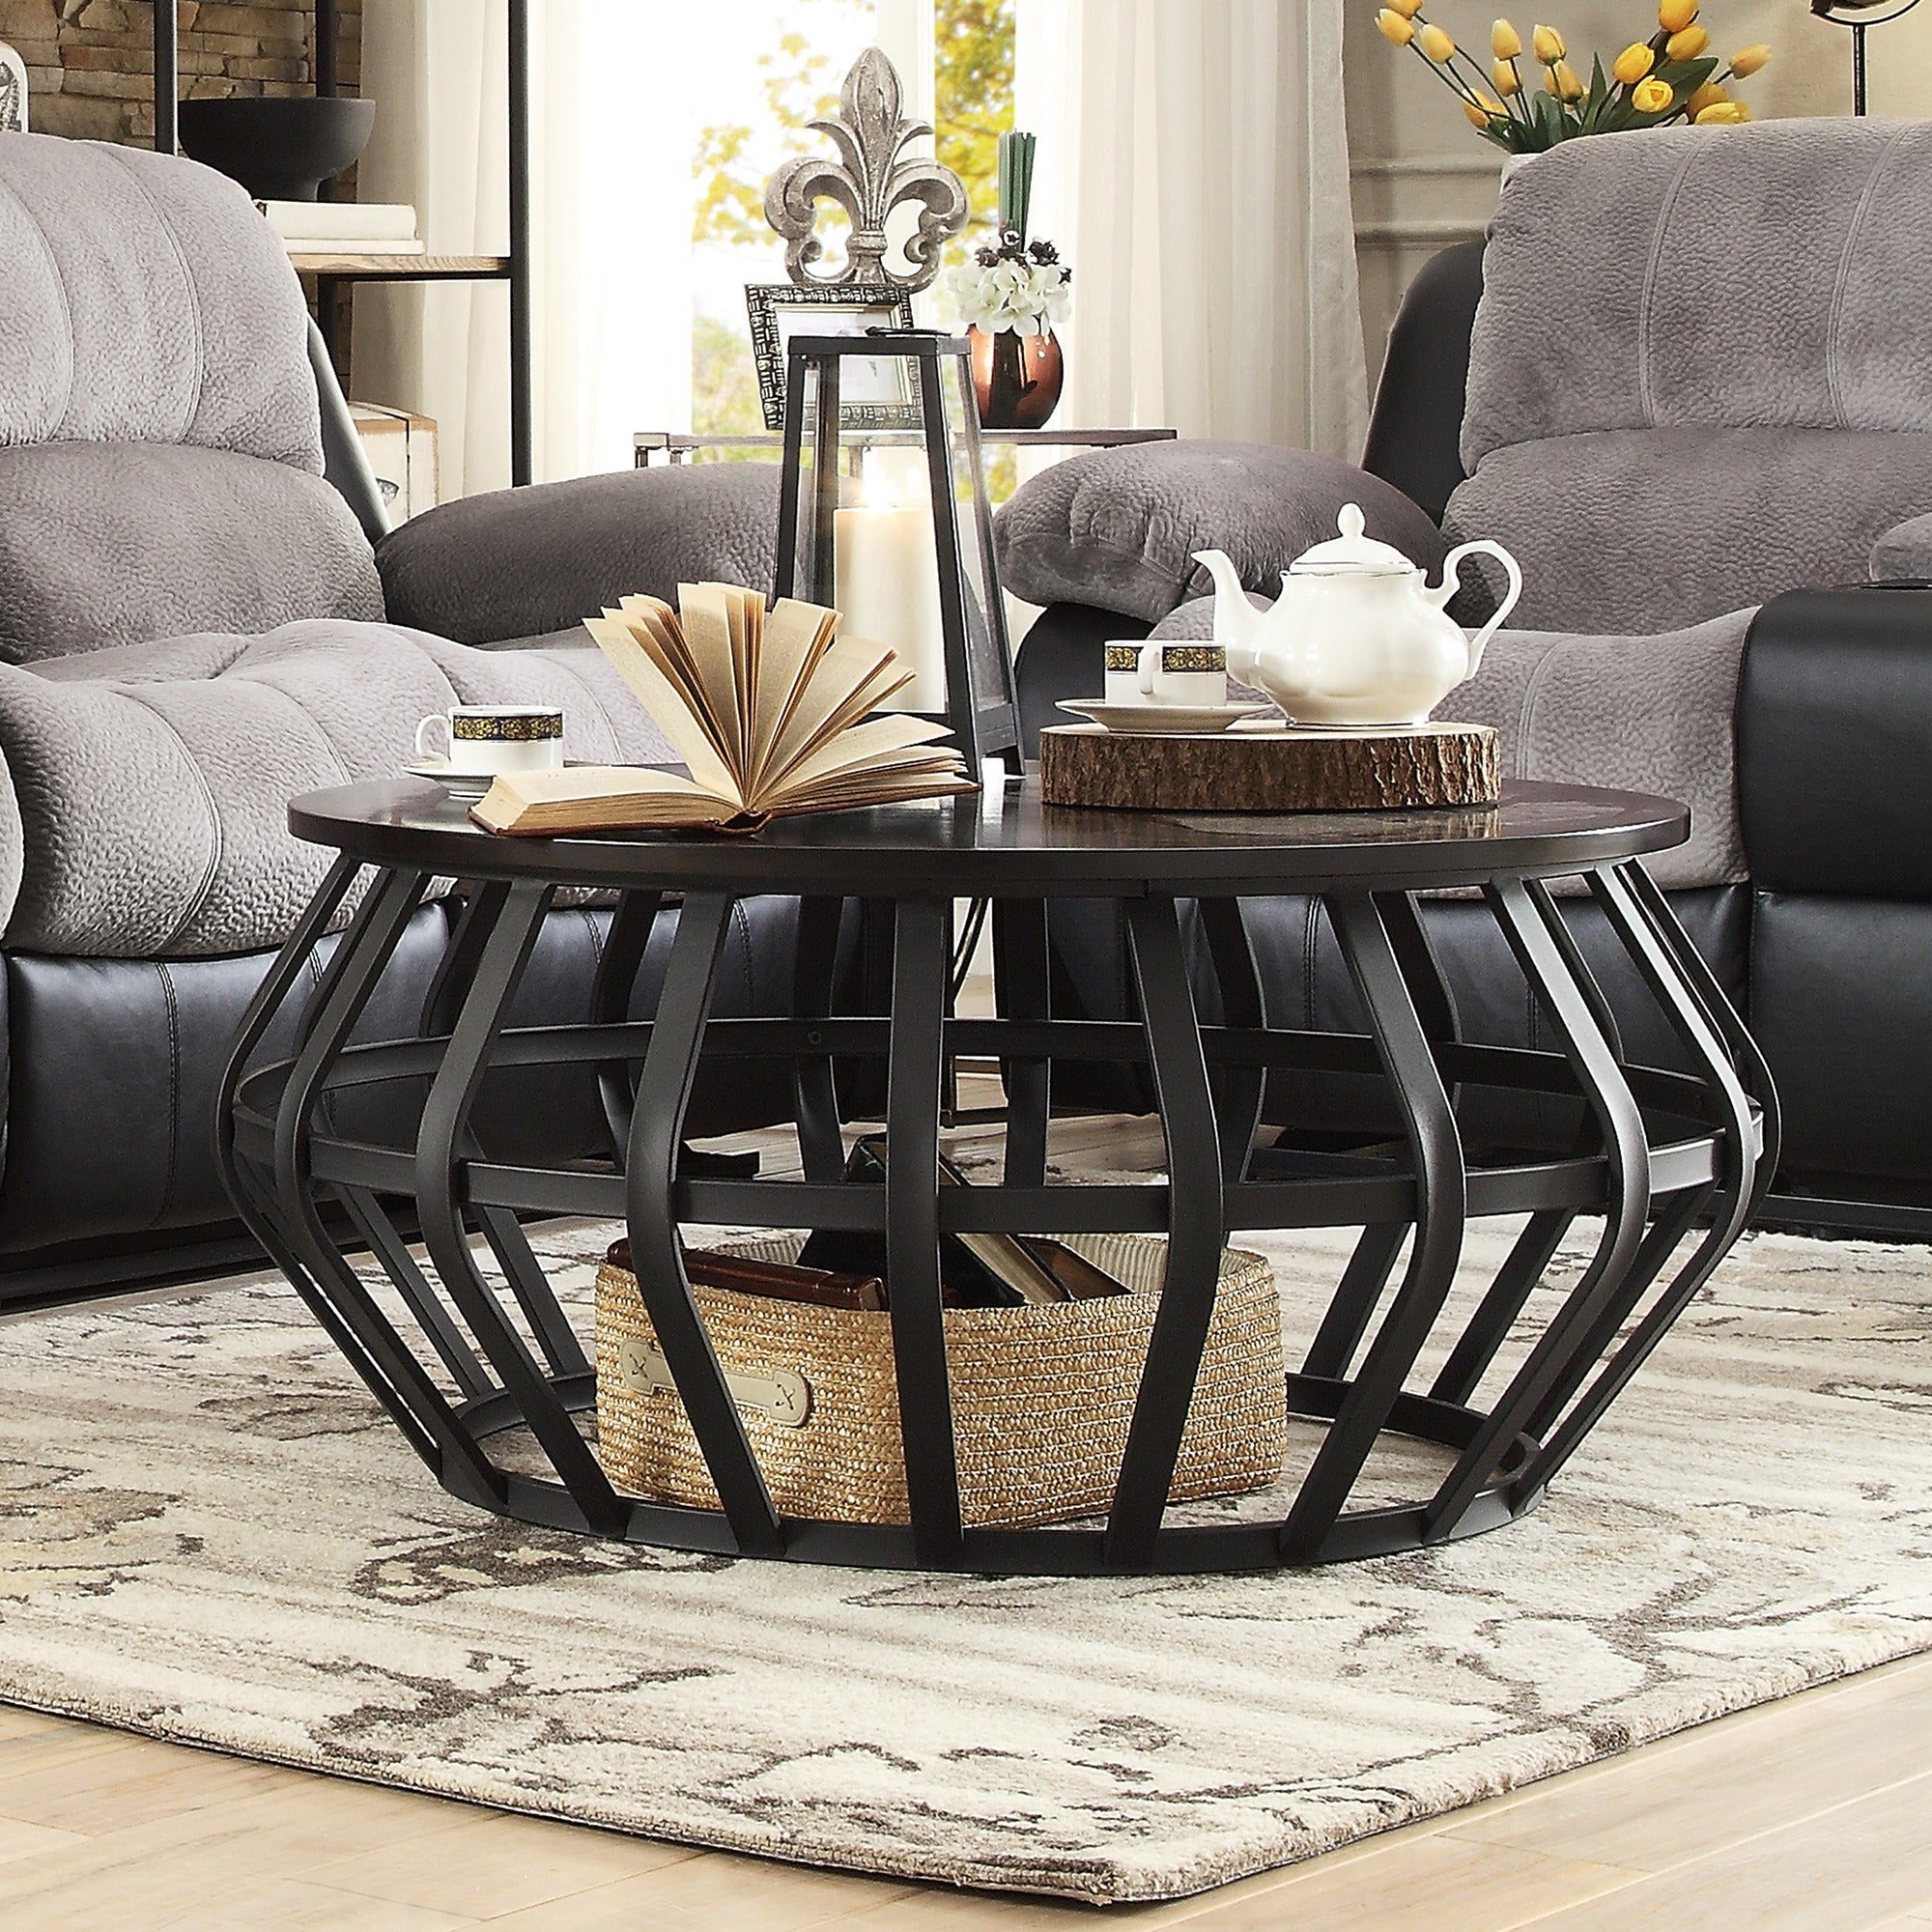 Cool Devon Metal Frame Round Cage Slate Accent Coffee Table By Inspire Q Classic Andrewgaddart Wooden Chair Designs For Living Room Andrewgaddartcom